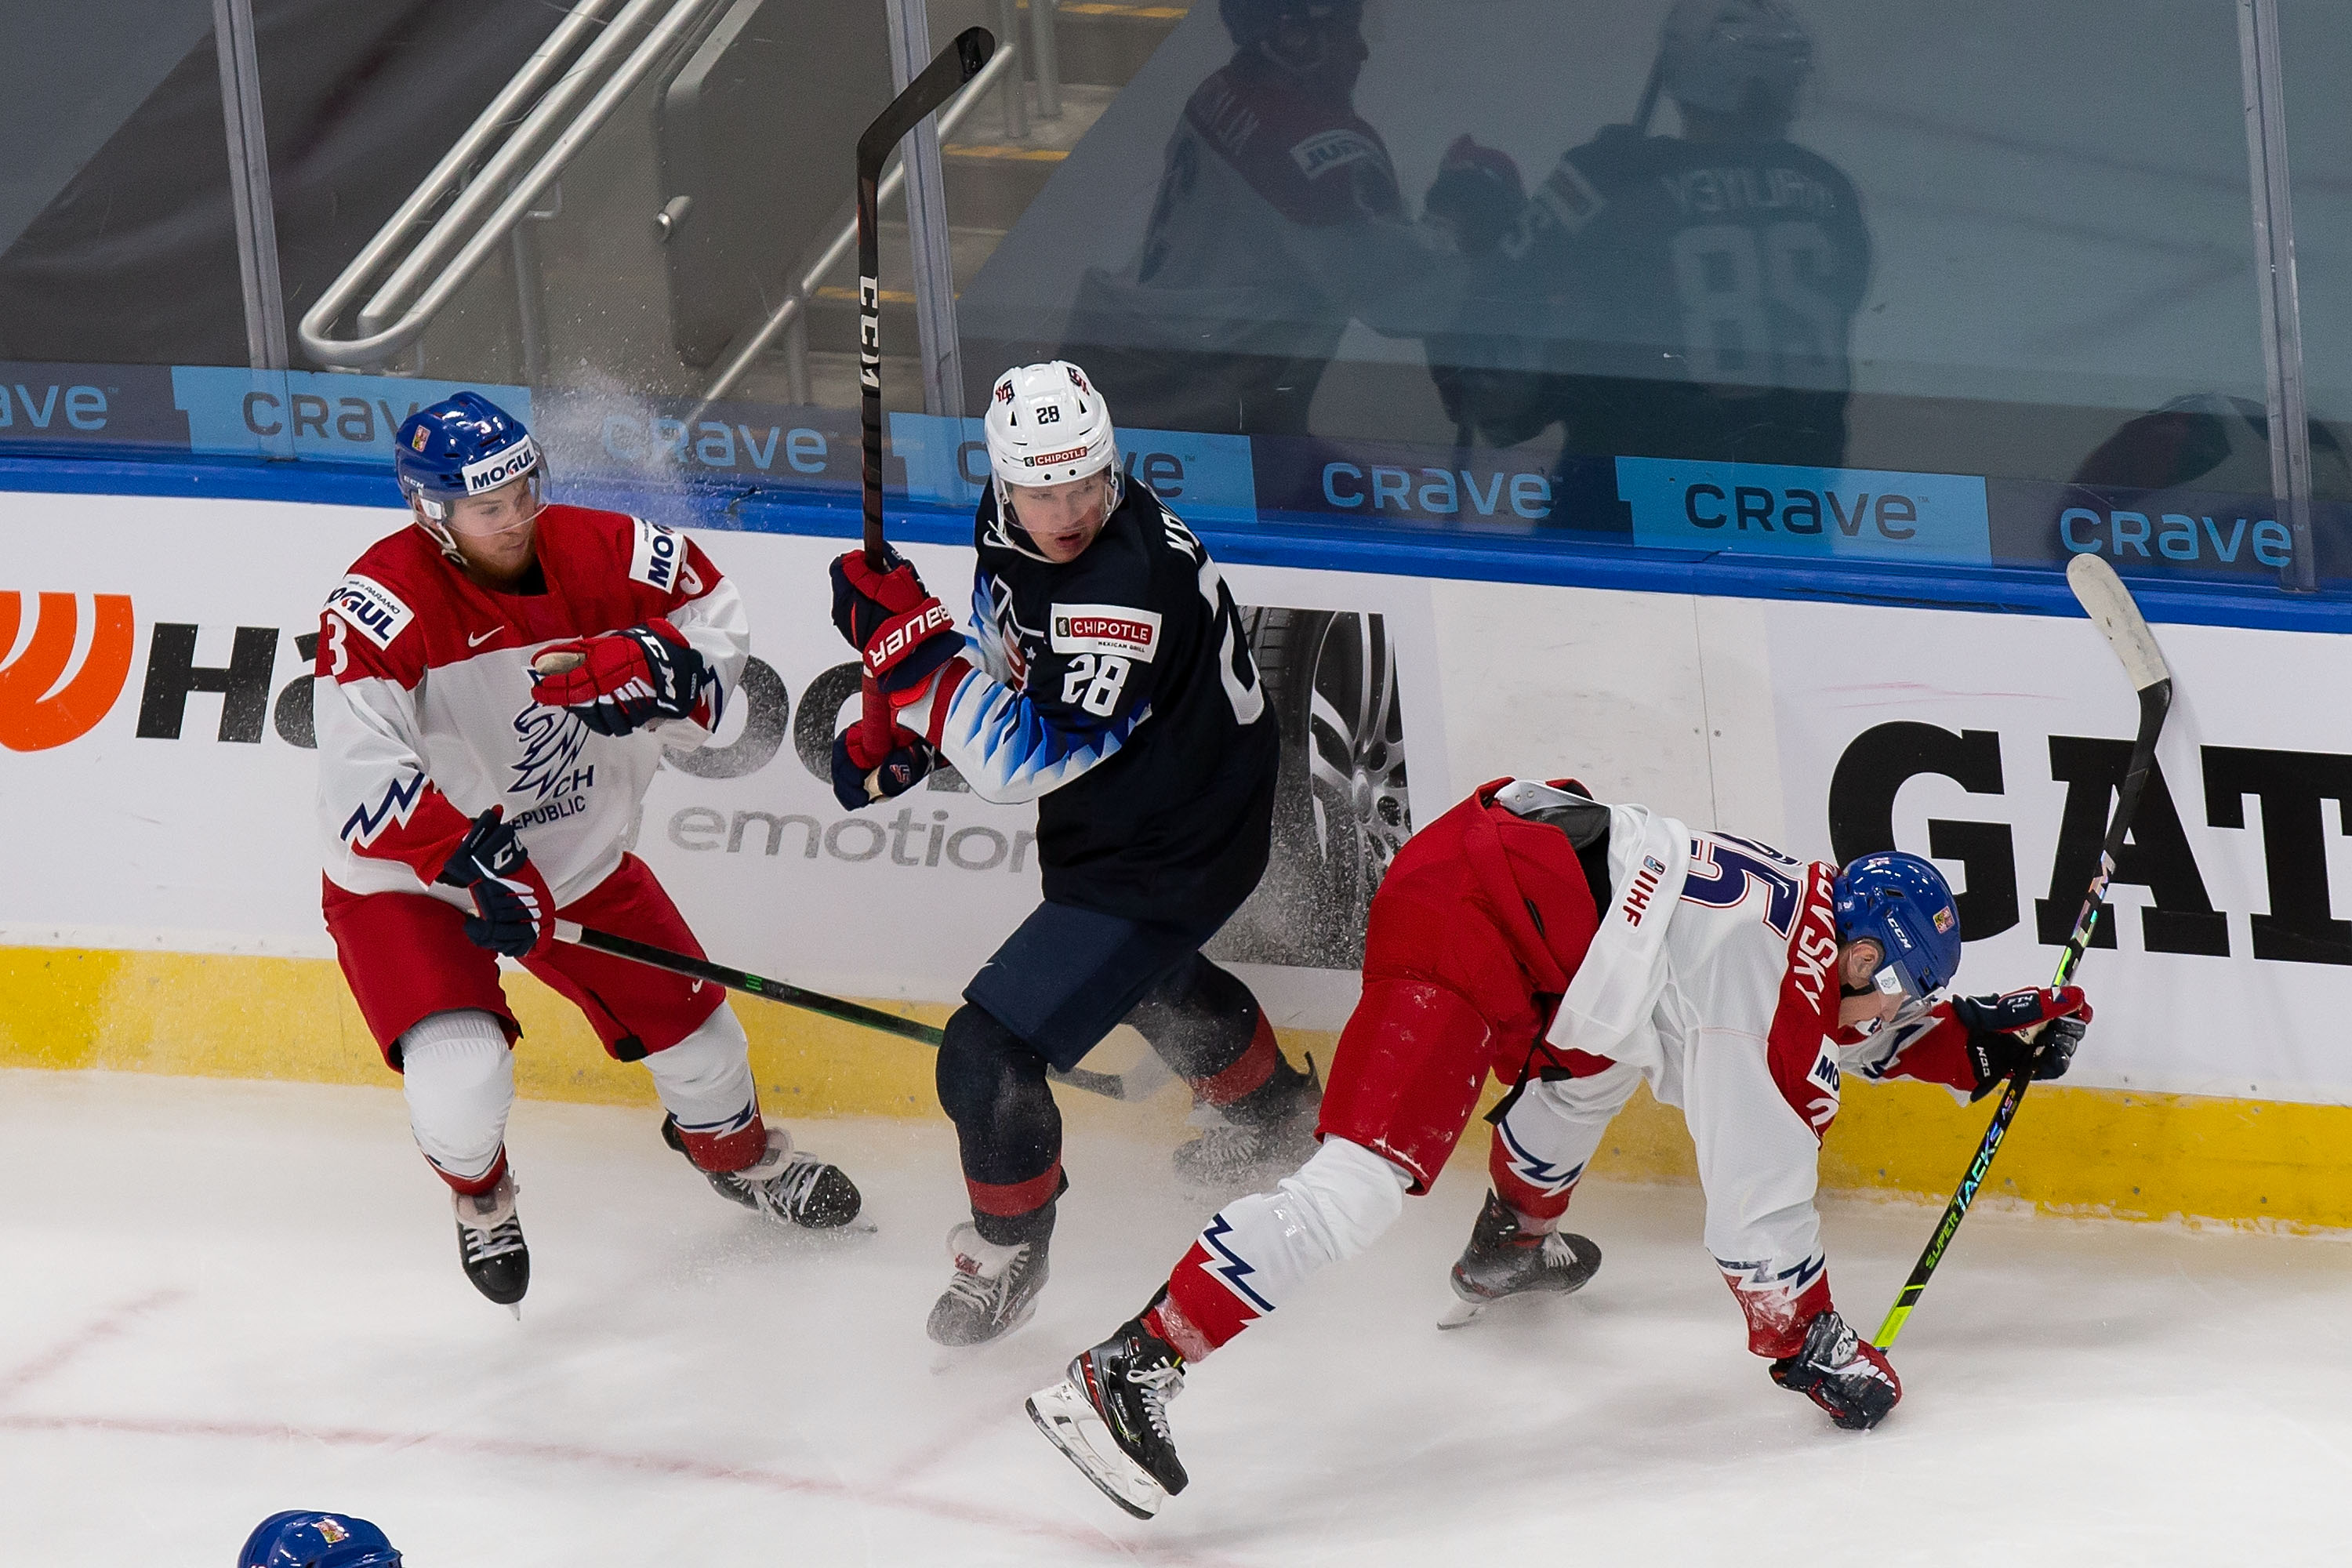 Arthur Kaliyev #28 of the United States skates against Karel Klikorka #3 and Jakub Rychlovsky #25 of the Czech Republic during the 2021 IIHF World Junior Championship at Rogers Place on December 29, 2020 in Edmonton, Canada.